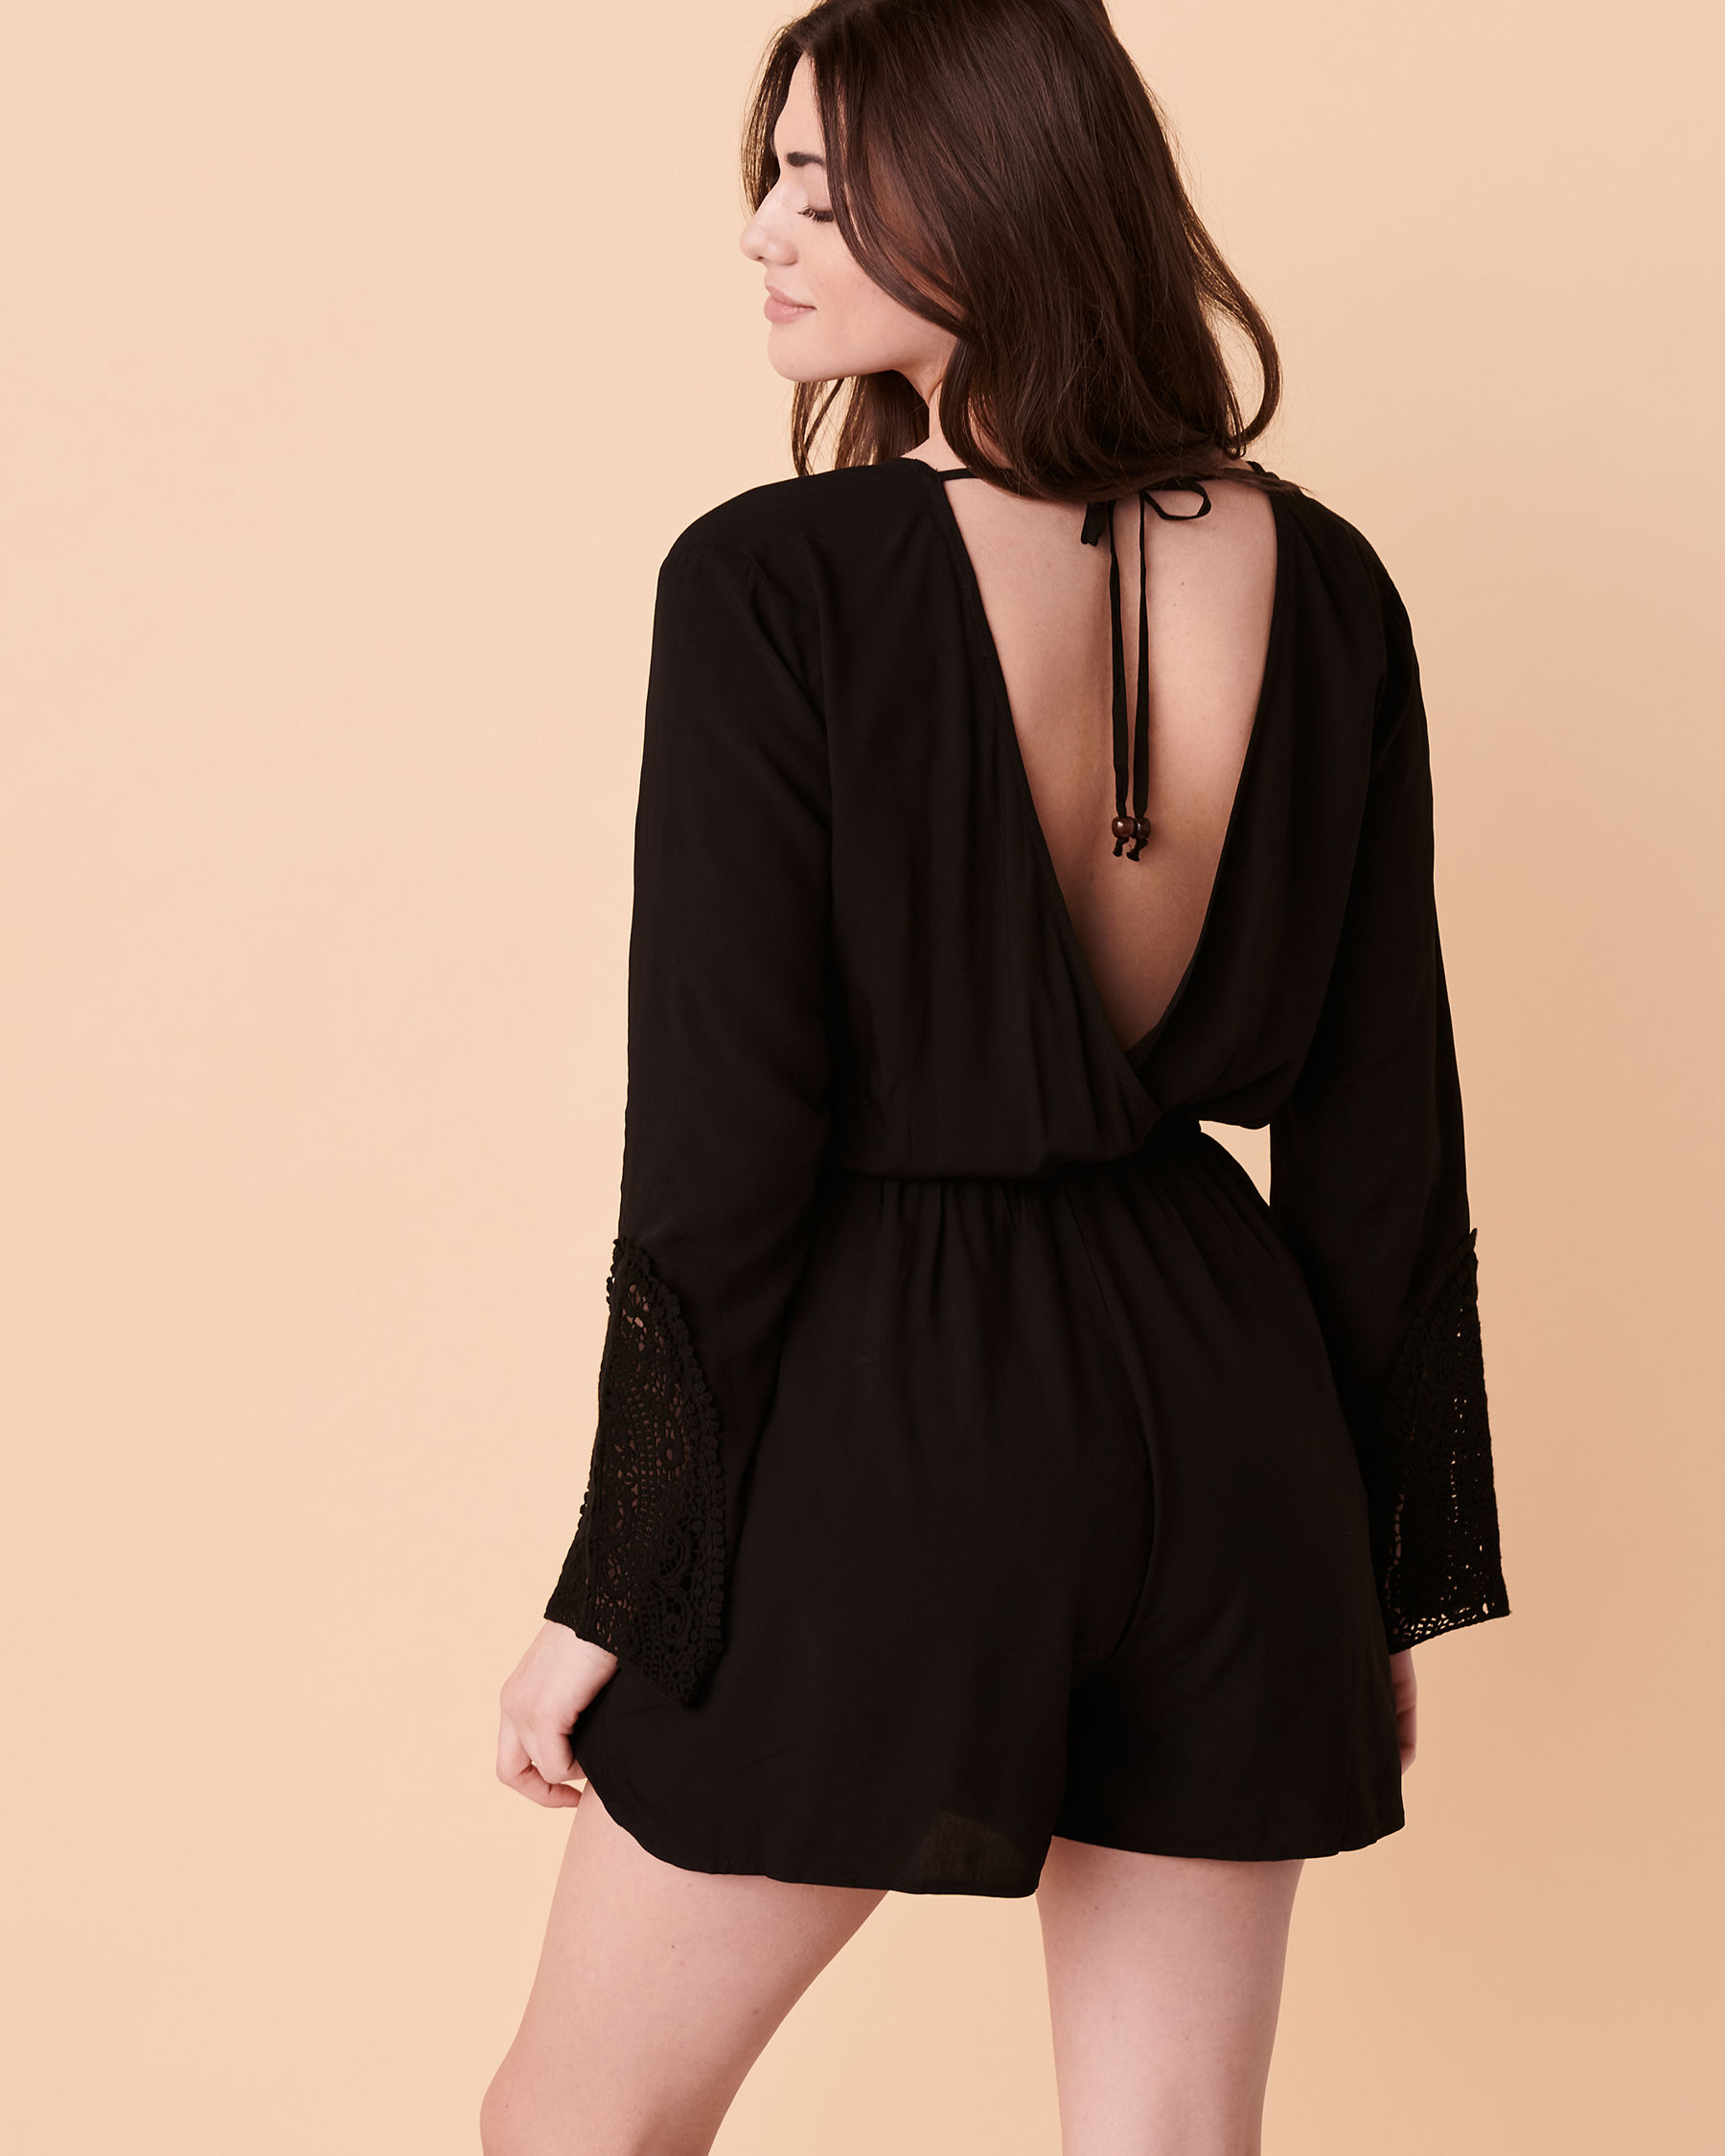 TURQUOISE COUTURE Bell Sleeve Romper Black 02300008 - View2